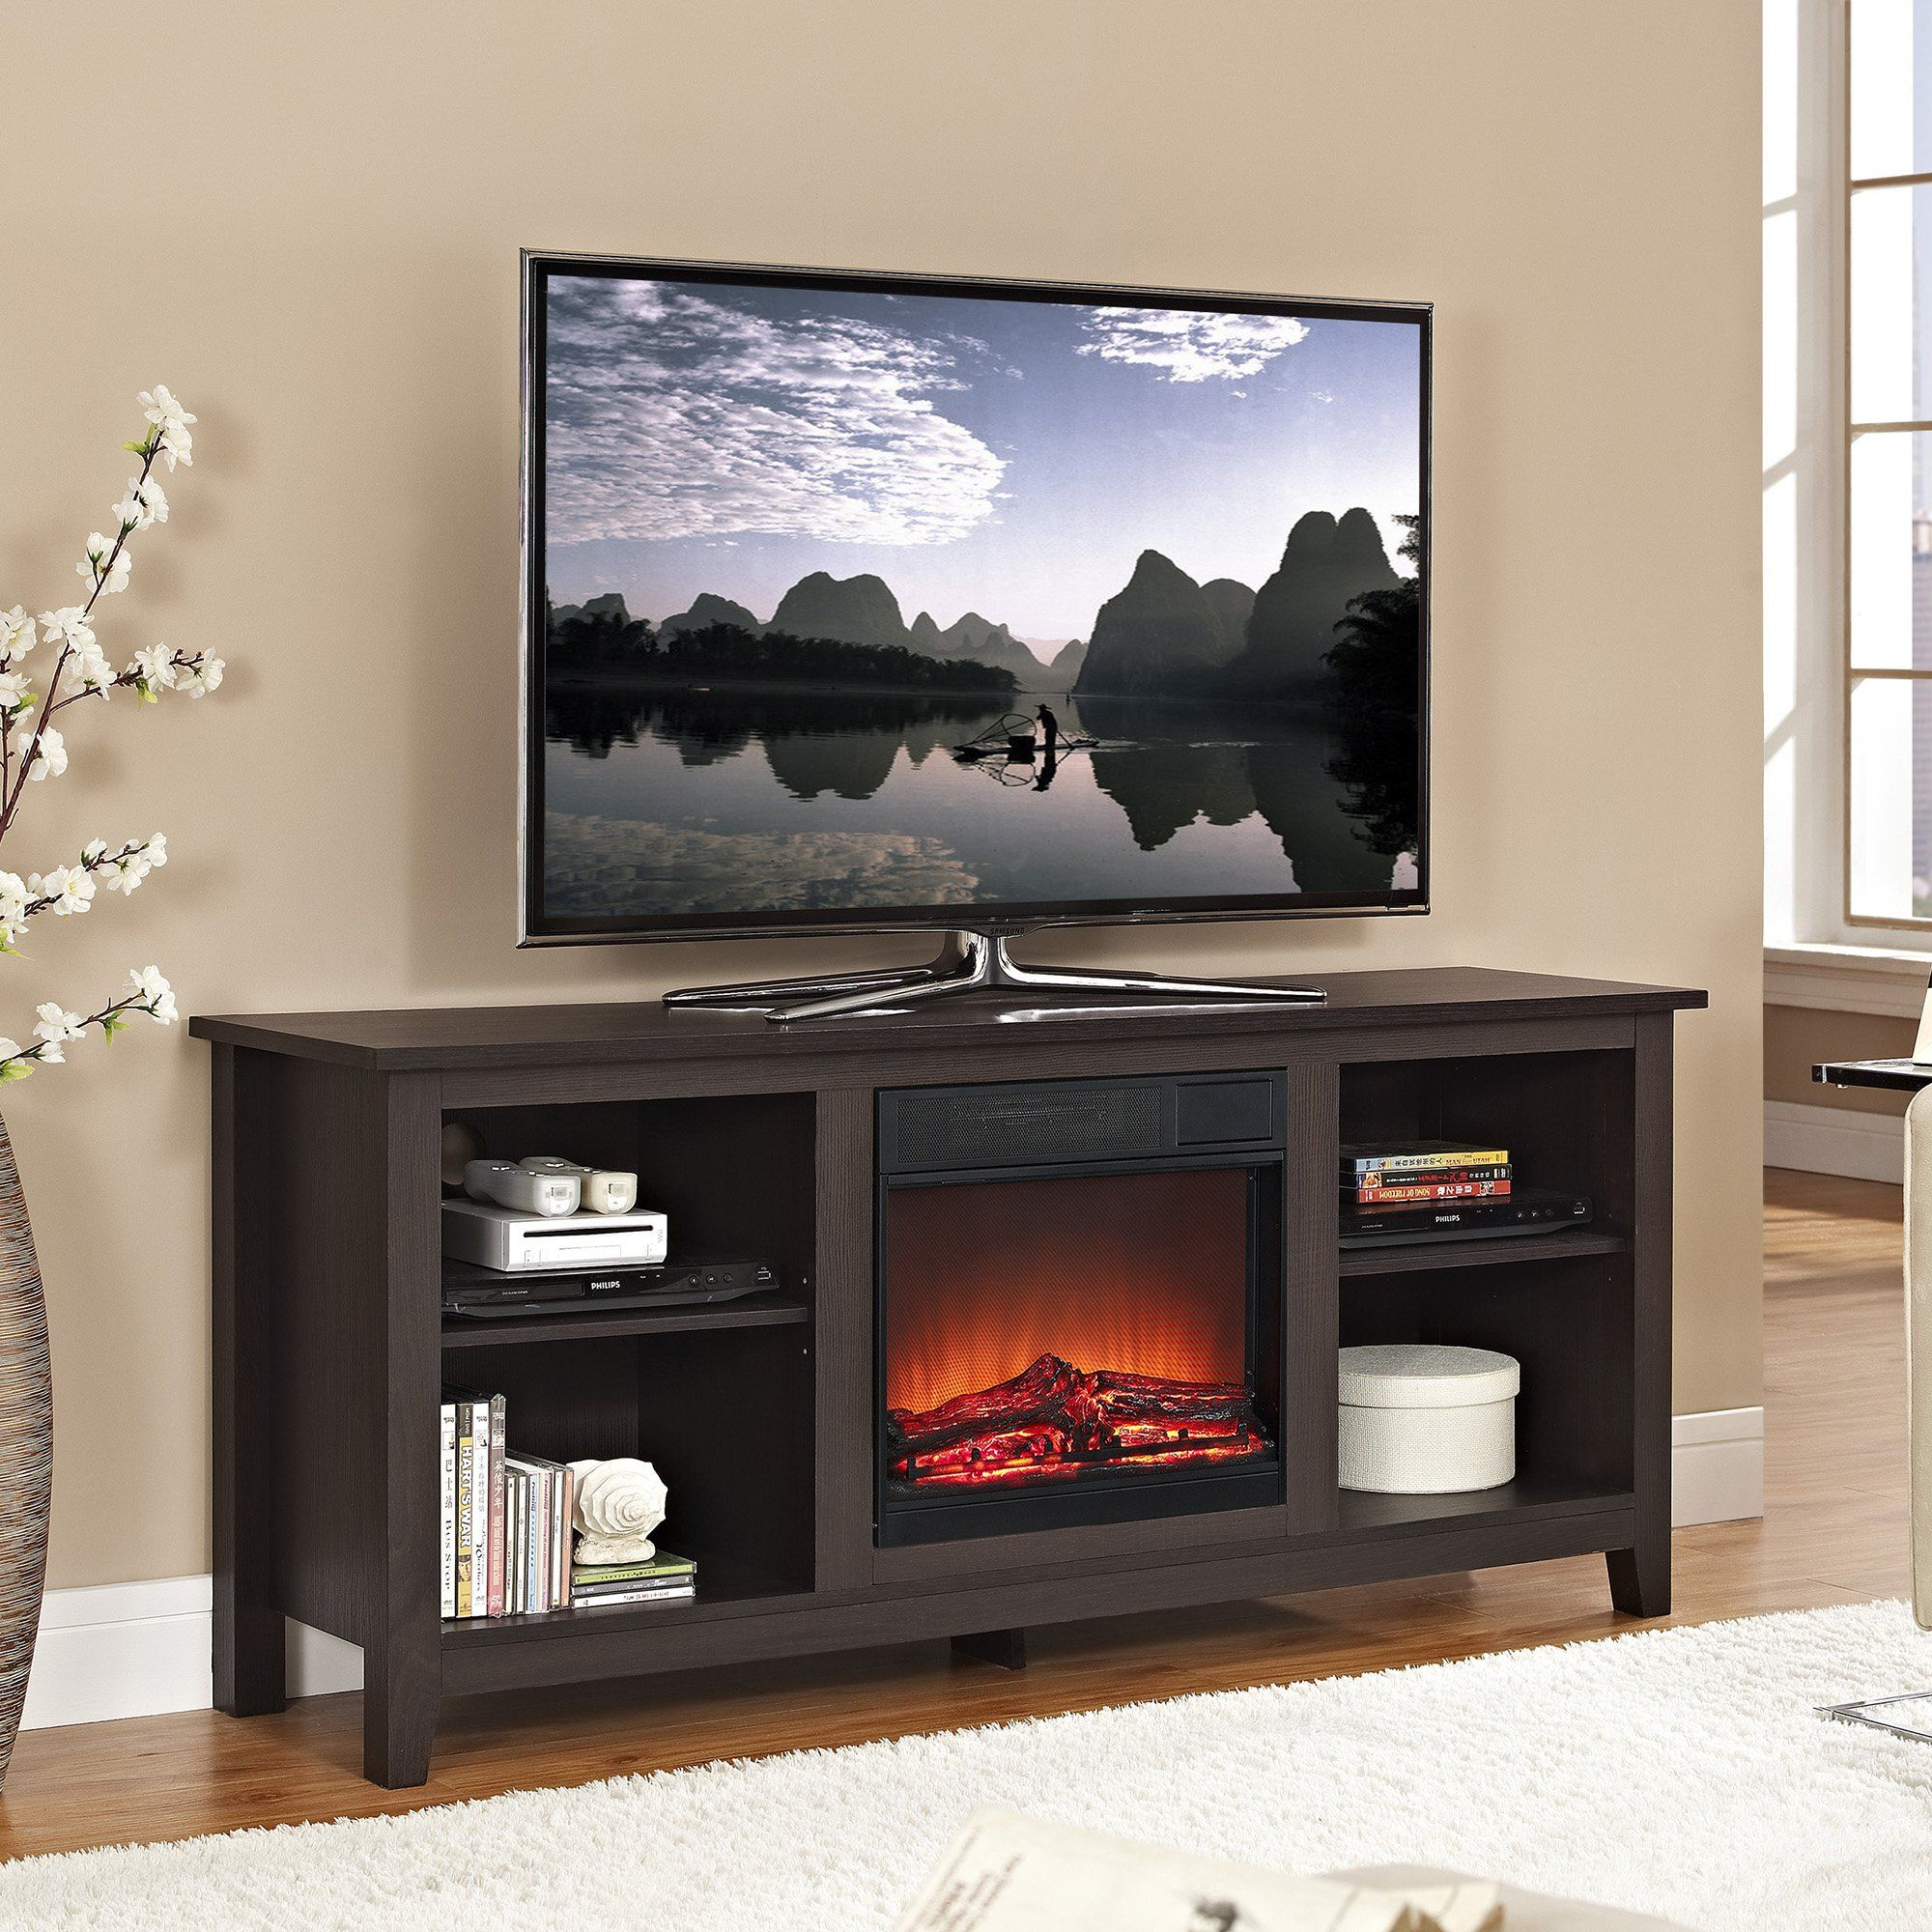 74fe1028408fefbbdbc6cd5f1148e976 Top Result 50 Awesome Corner Electric Fireplace Pic 2018 Jdt4